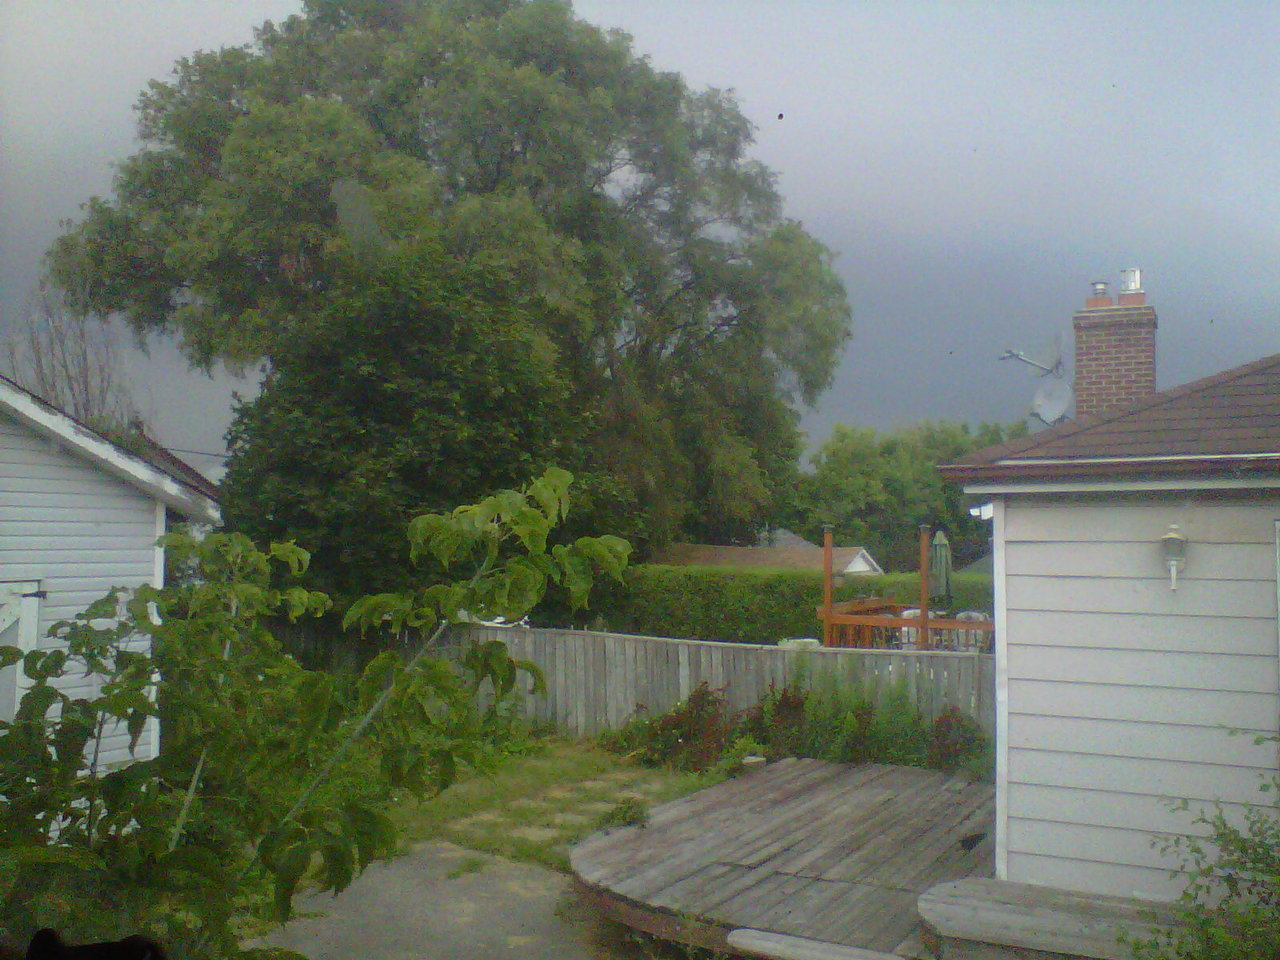 We're in for a good thunderstorm, I think. I've been hearing rumbles for about 15 minutes now, but no rain has fallen yet. I'm just hoping it cools down.